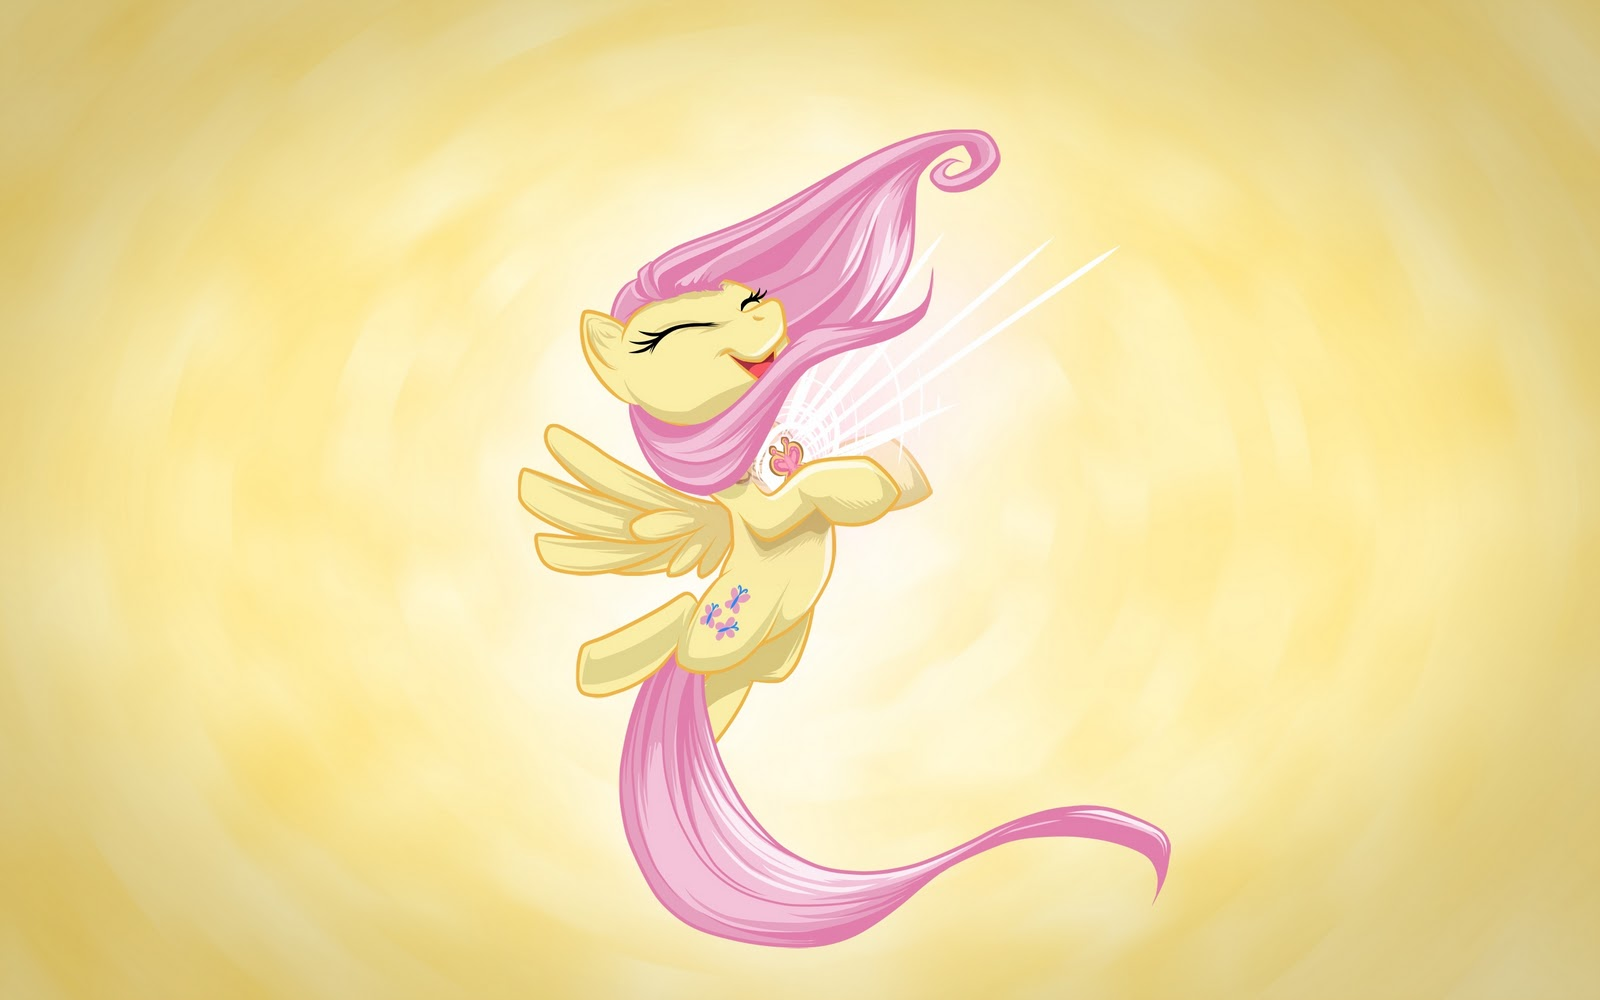 http://1.bp.blogspot.com/-0UlxoQcsLDQ/Tq3PmLRwHNI/AAAAAAAAQKE/XCDUuEDT3CU/s1600/78063+-+Elements_of_Harmony+artist+mysticalpha+element_of_kindness+fluttershy+wallpaper.jpg